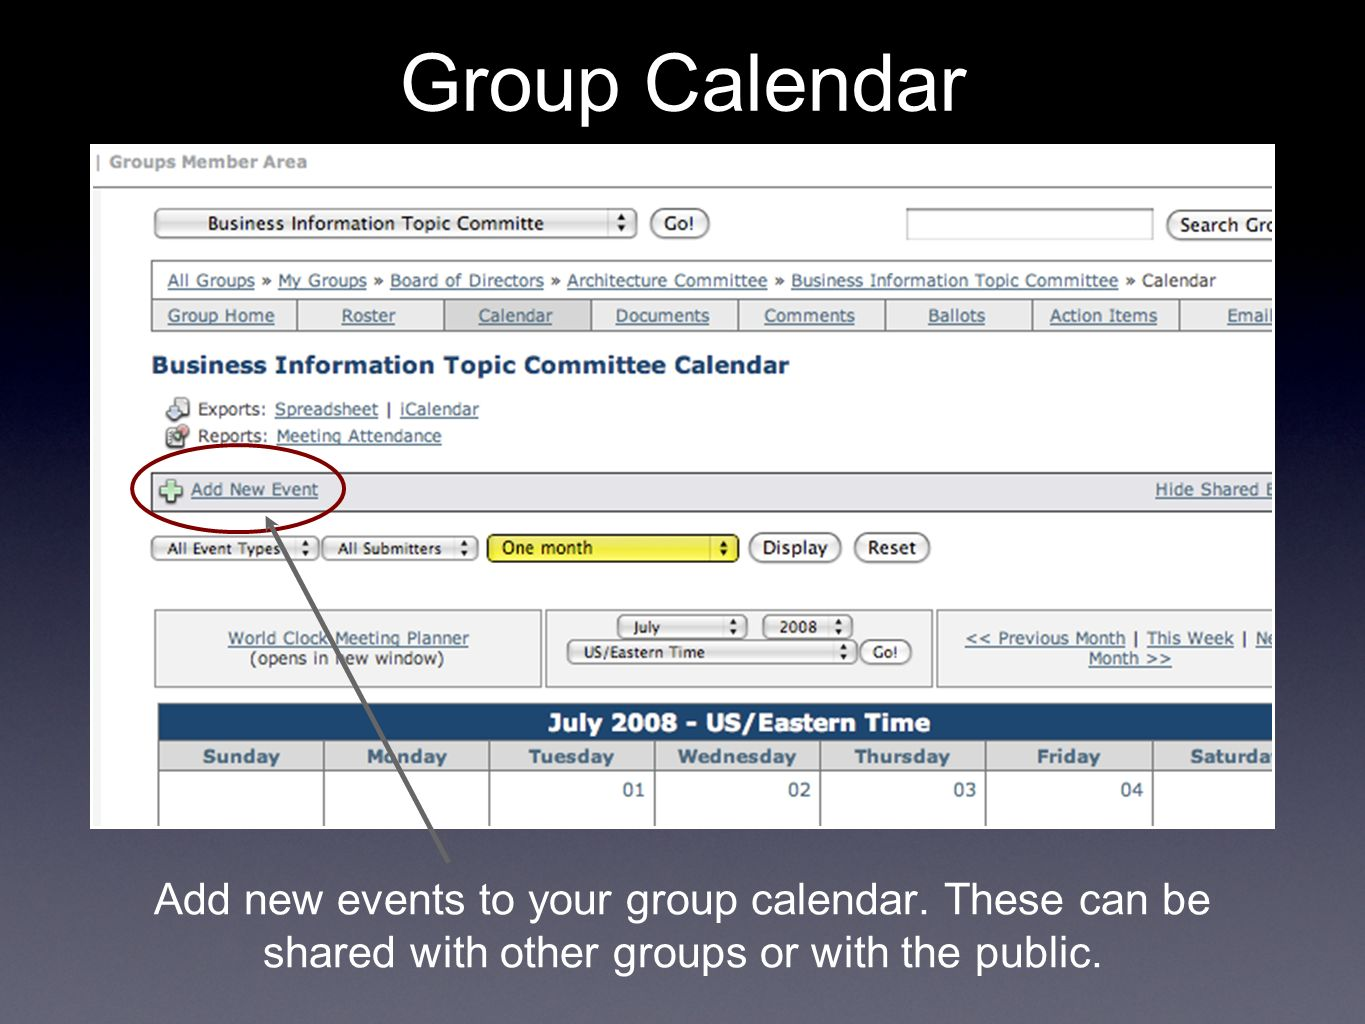 Add new events to your group calendar. These can be shared with other groups or with the public.